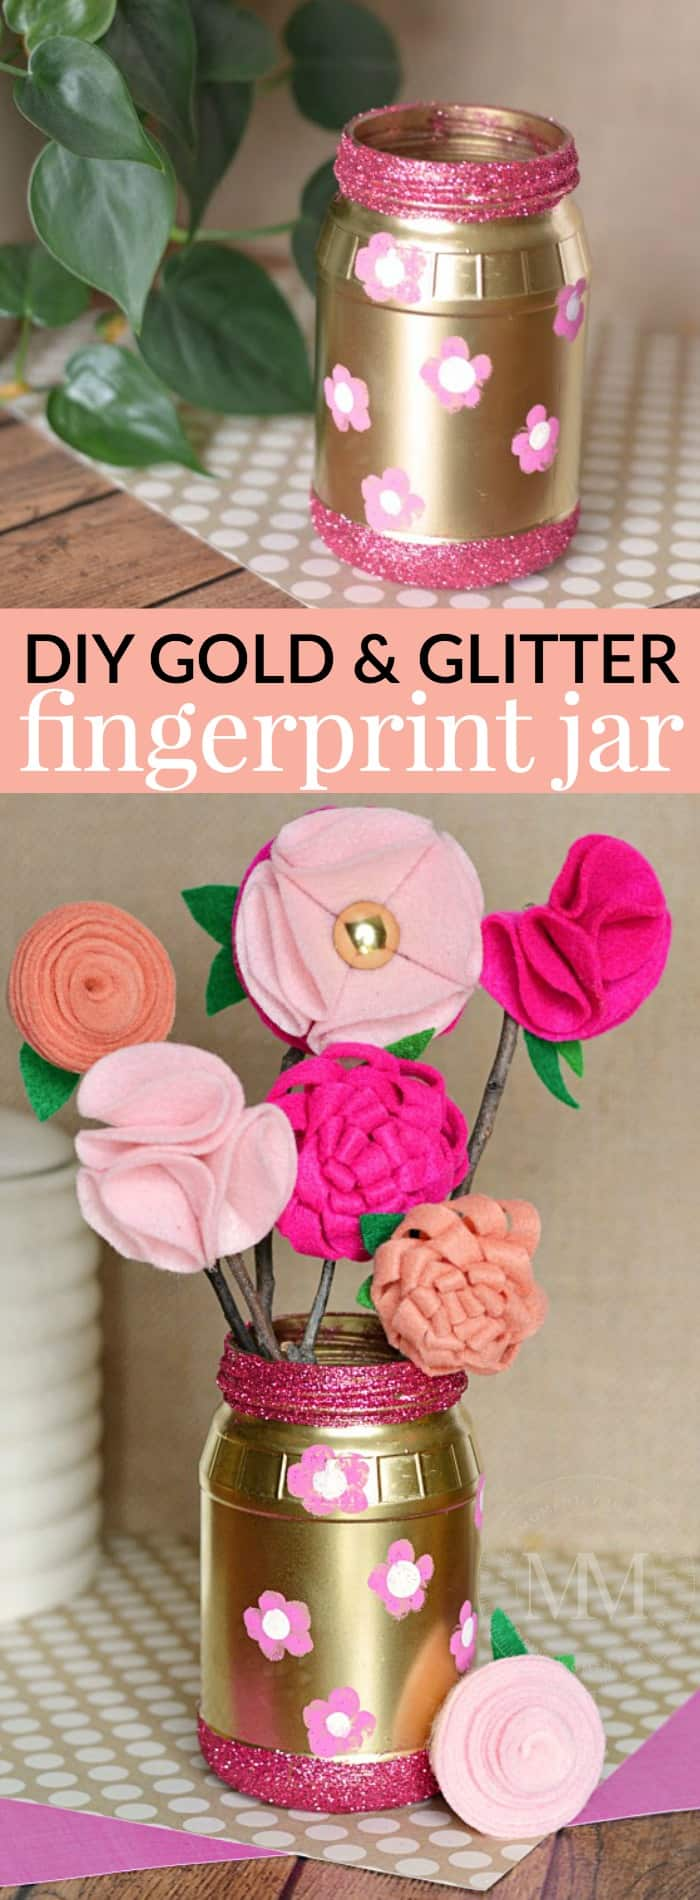 Make your own gold and glitter mason jar with fingerprint flowers - perfect to display some homemade felt flowers.